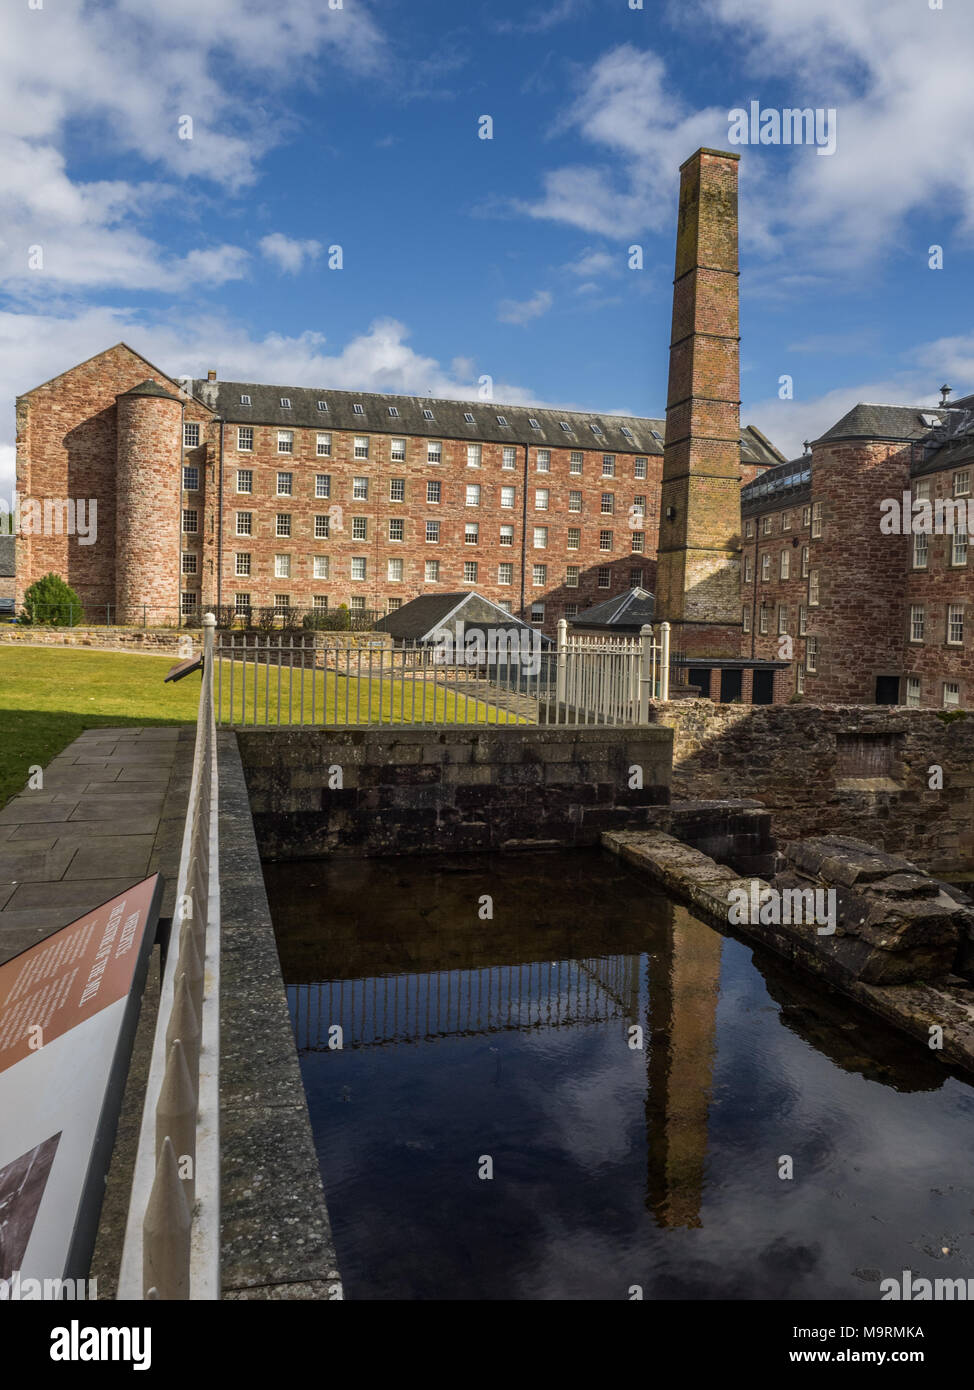 Stanley Mills Perthshire Scotland Historic water powered cotton mill on the banks of the River Tay - Stock Image